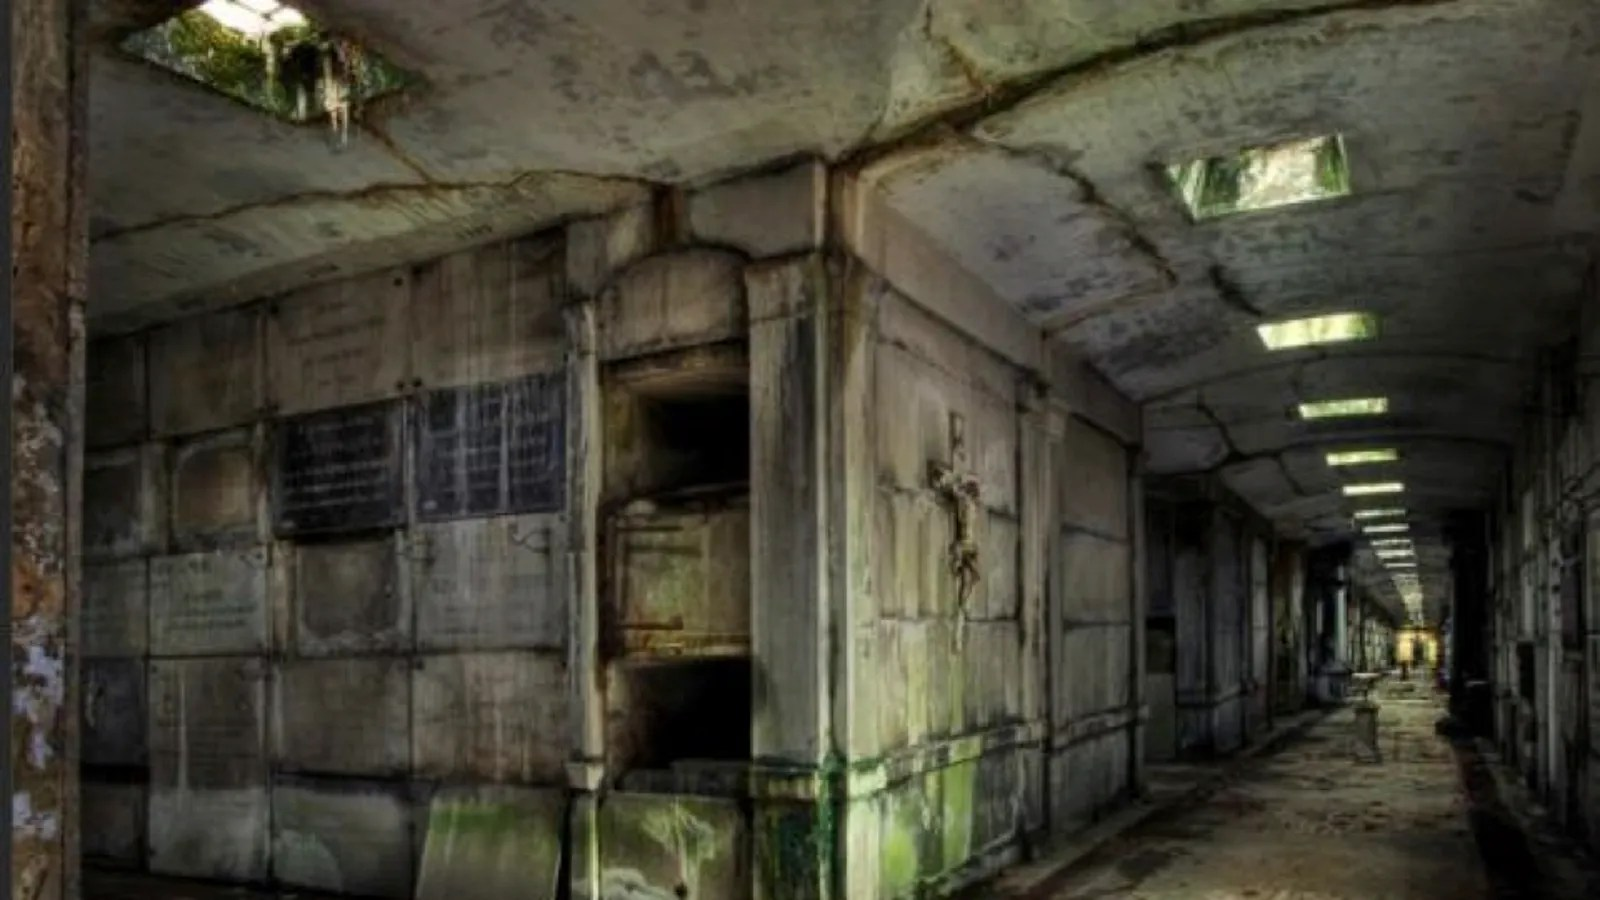 Haunted Movie This Abandoned Tomb In Belgium Would Be The Perfect Set